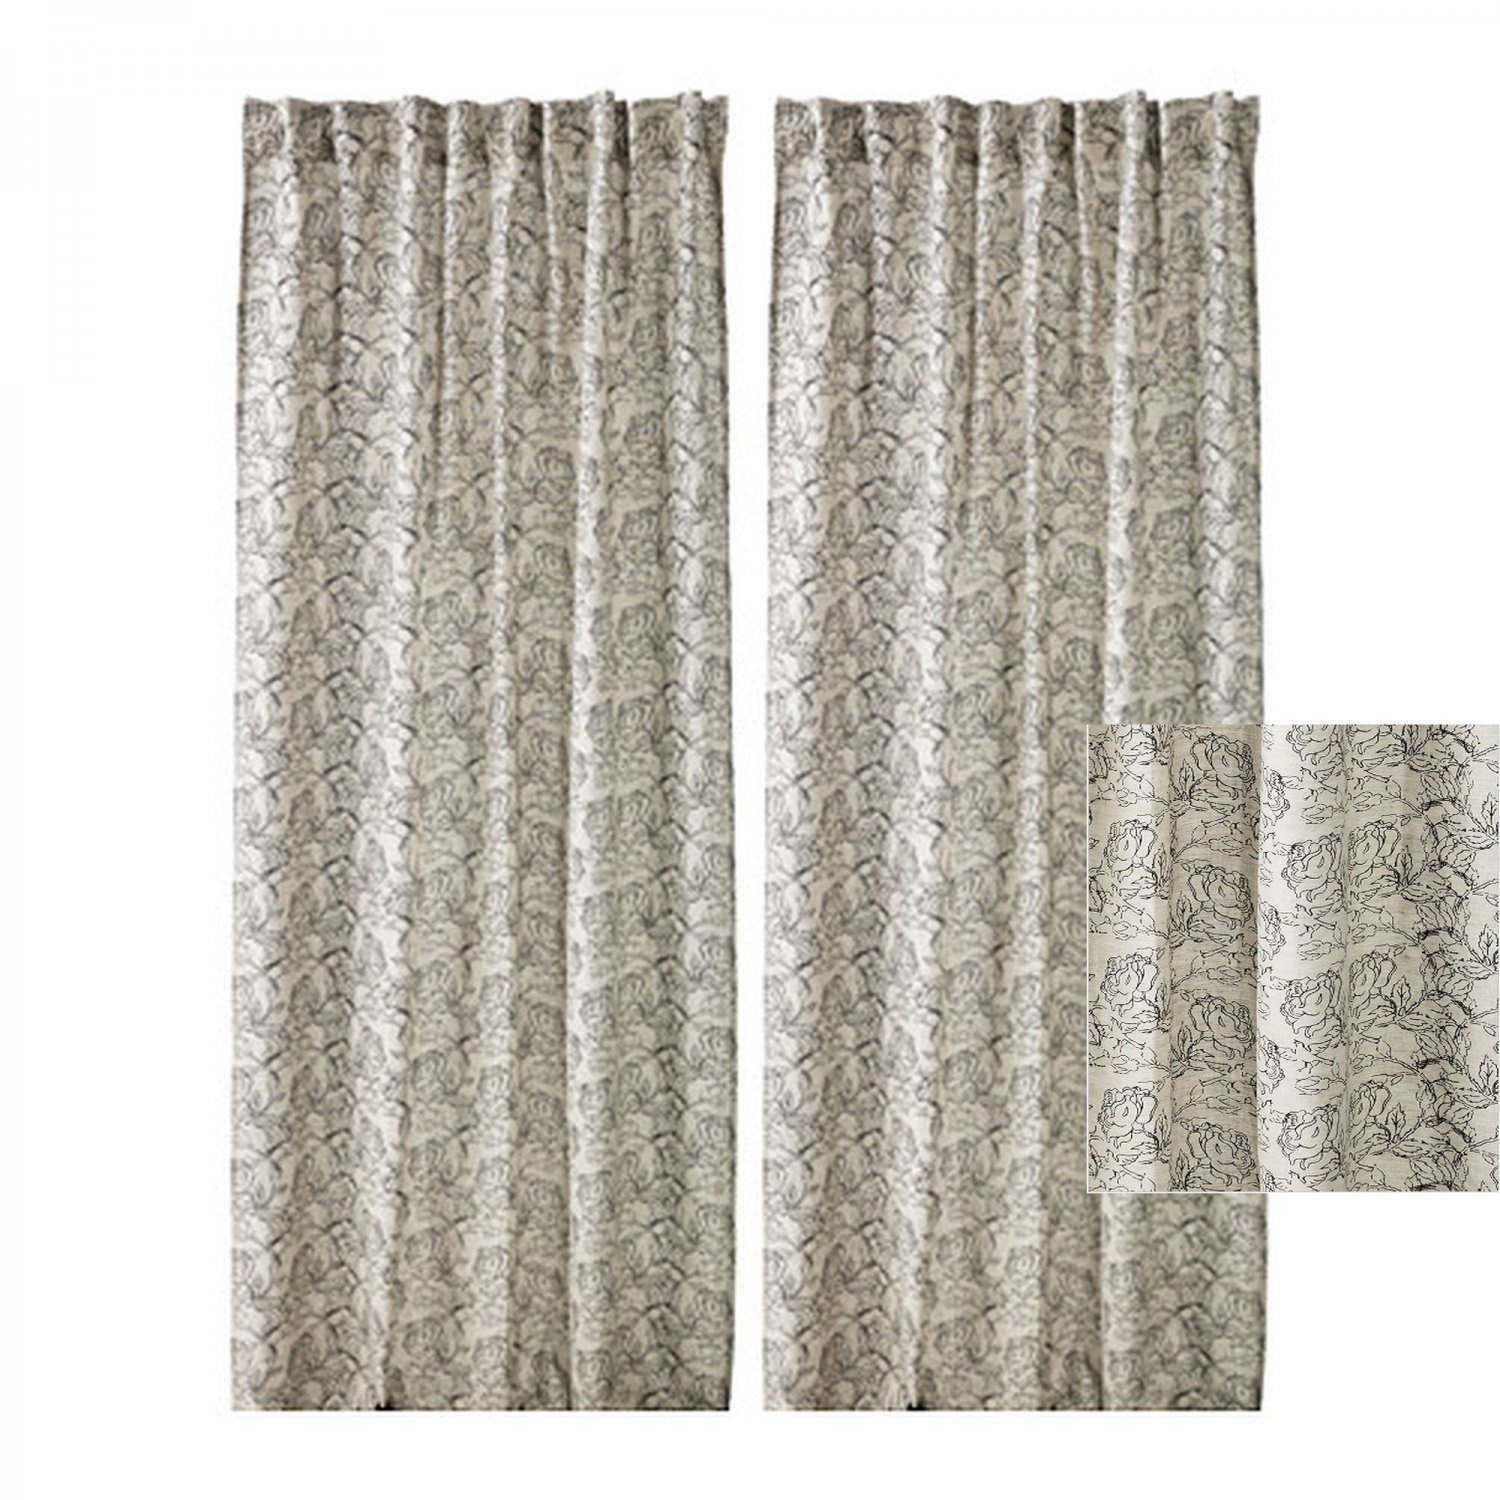 ikea ryssby 2014 curtains drapes black beige natural floral linen